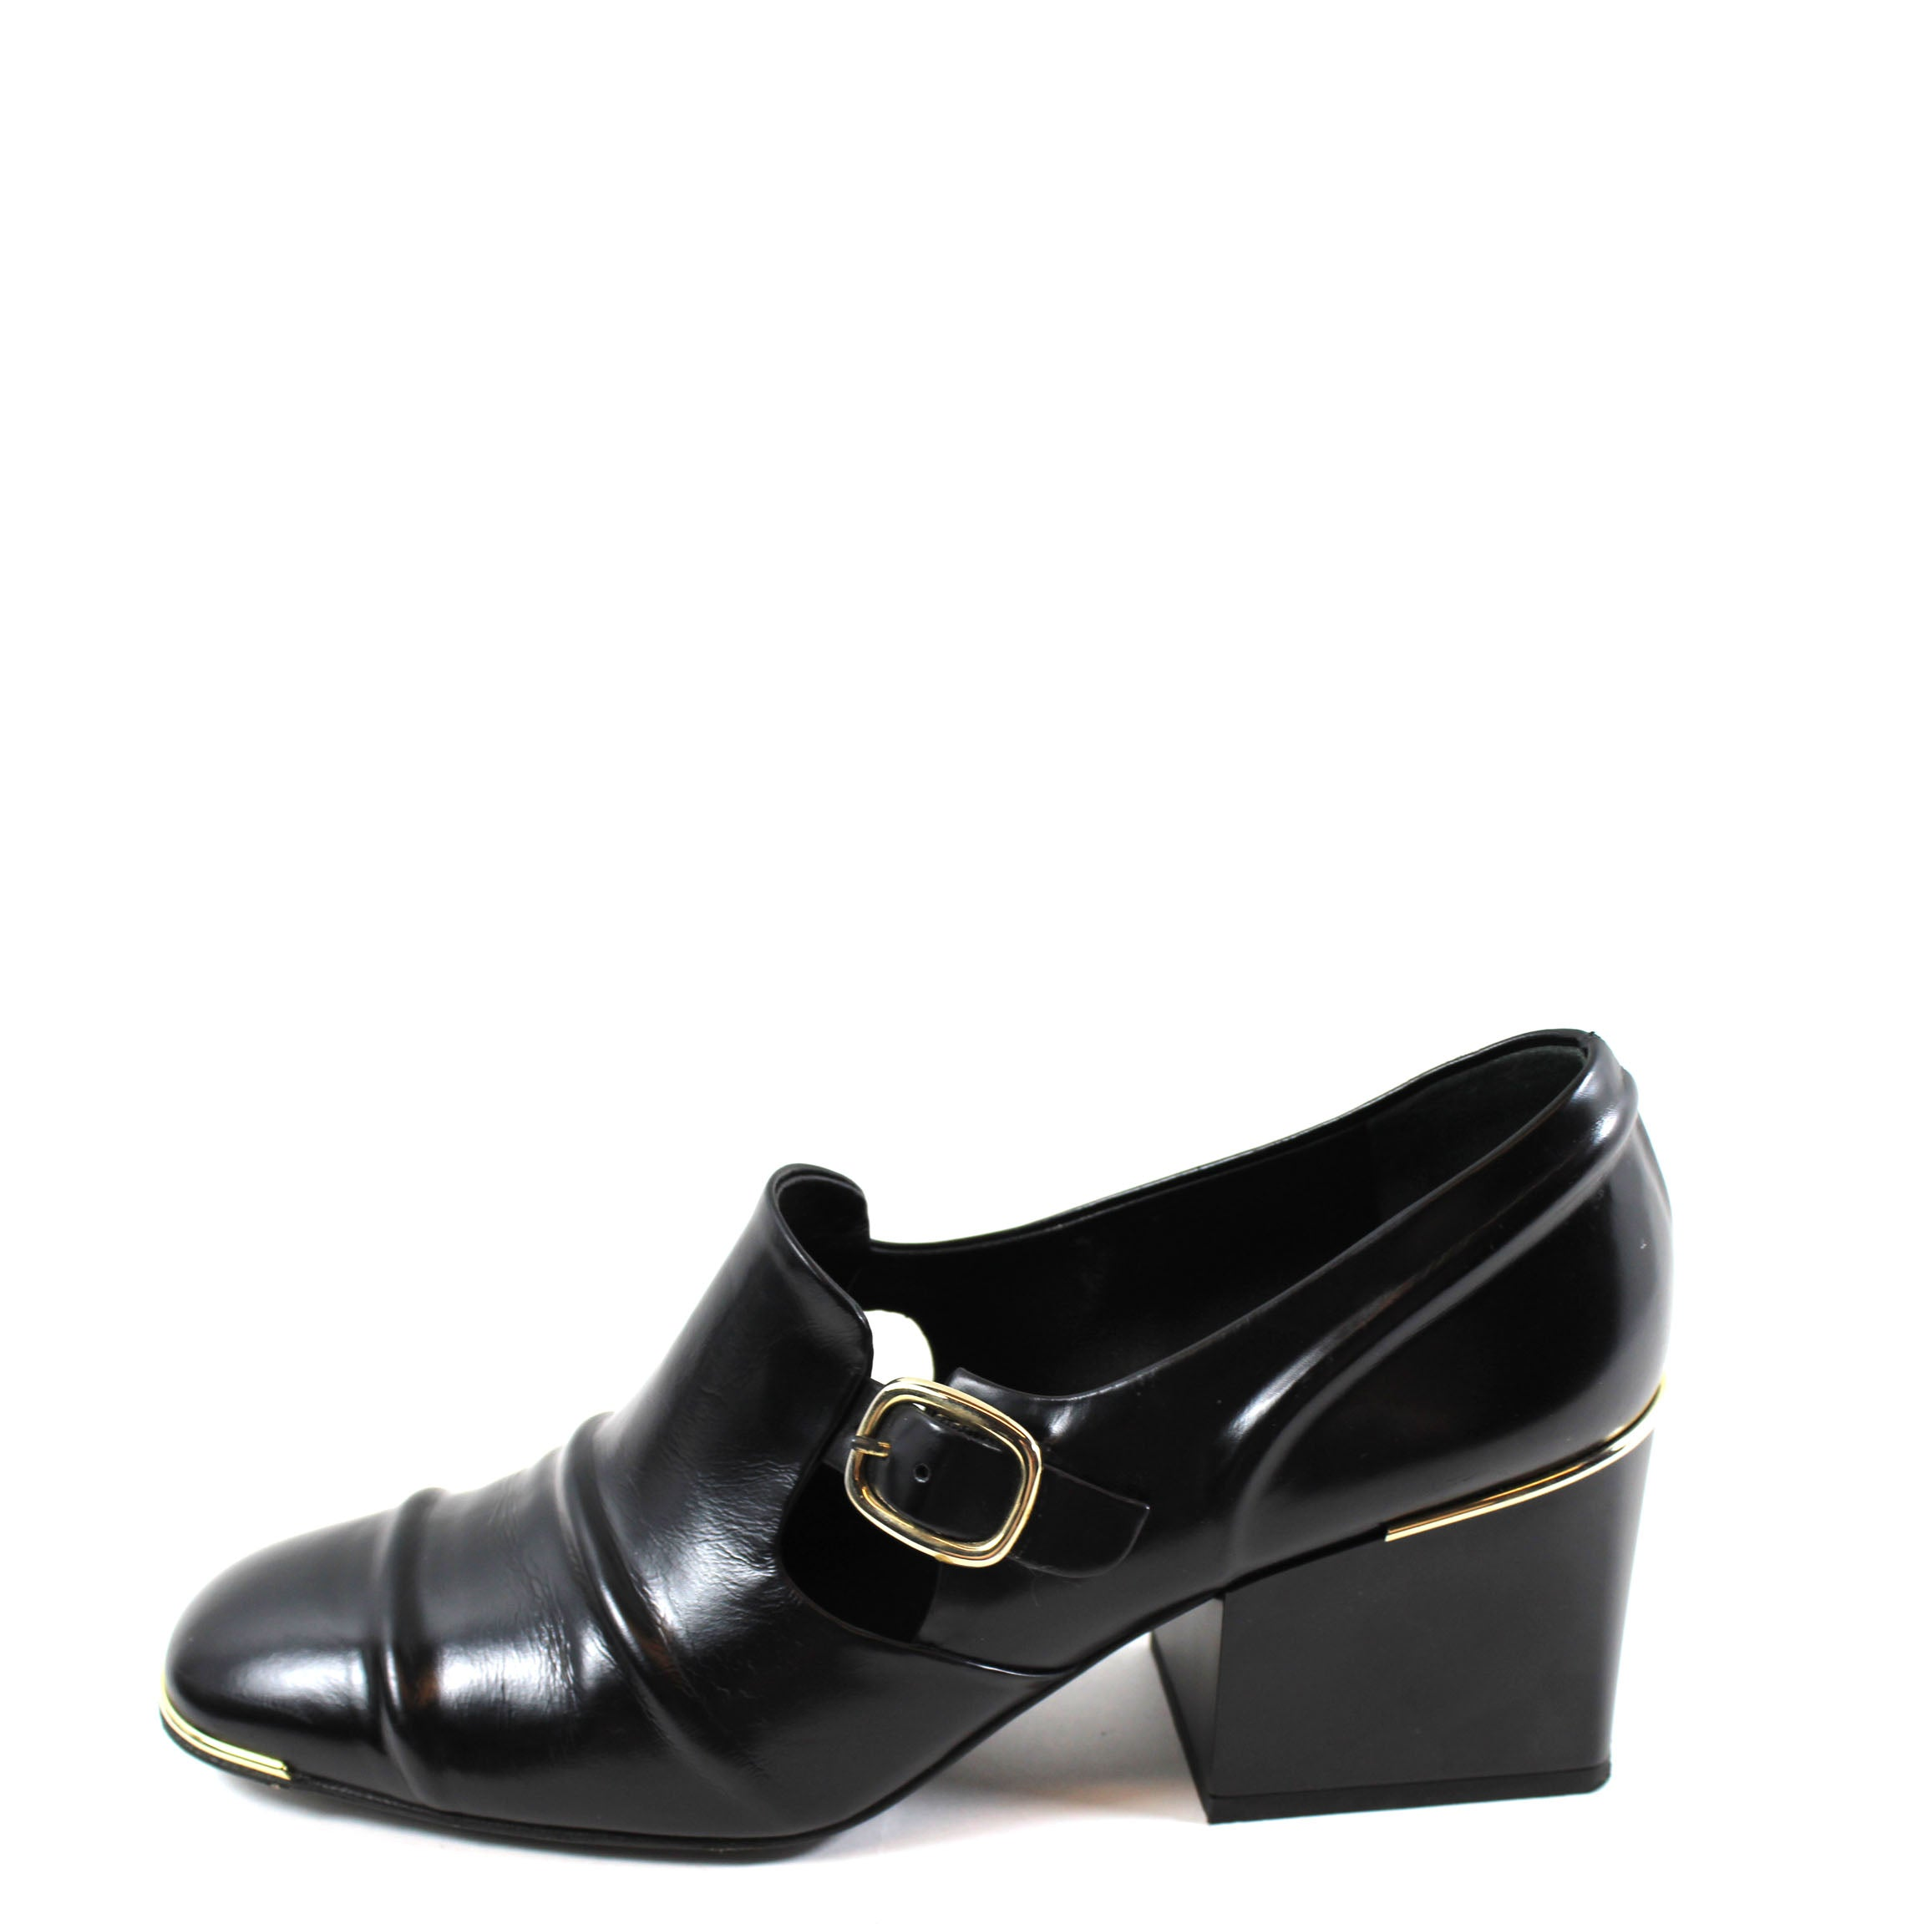 396146e12a08 Balenciaga  Cube  Black Leather Block Heel Loafers (Size 39) – Encore  Consignment